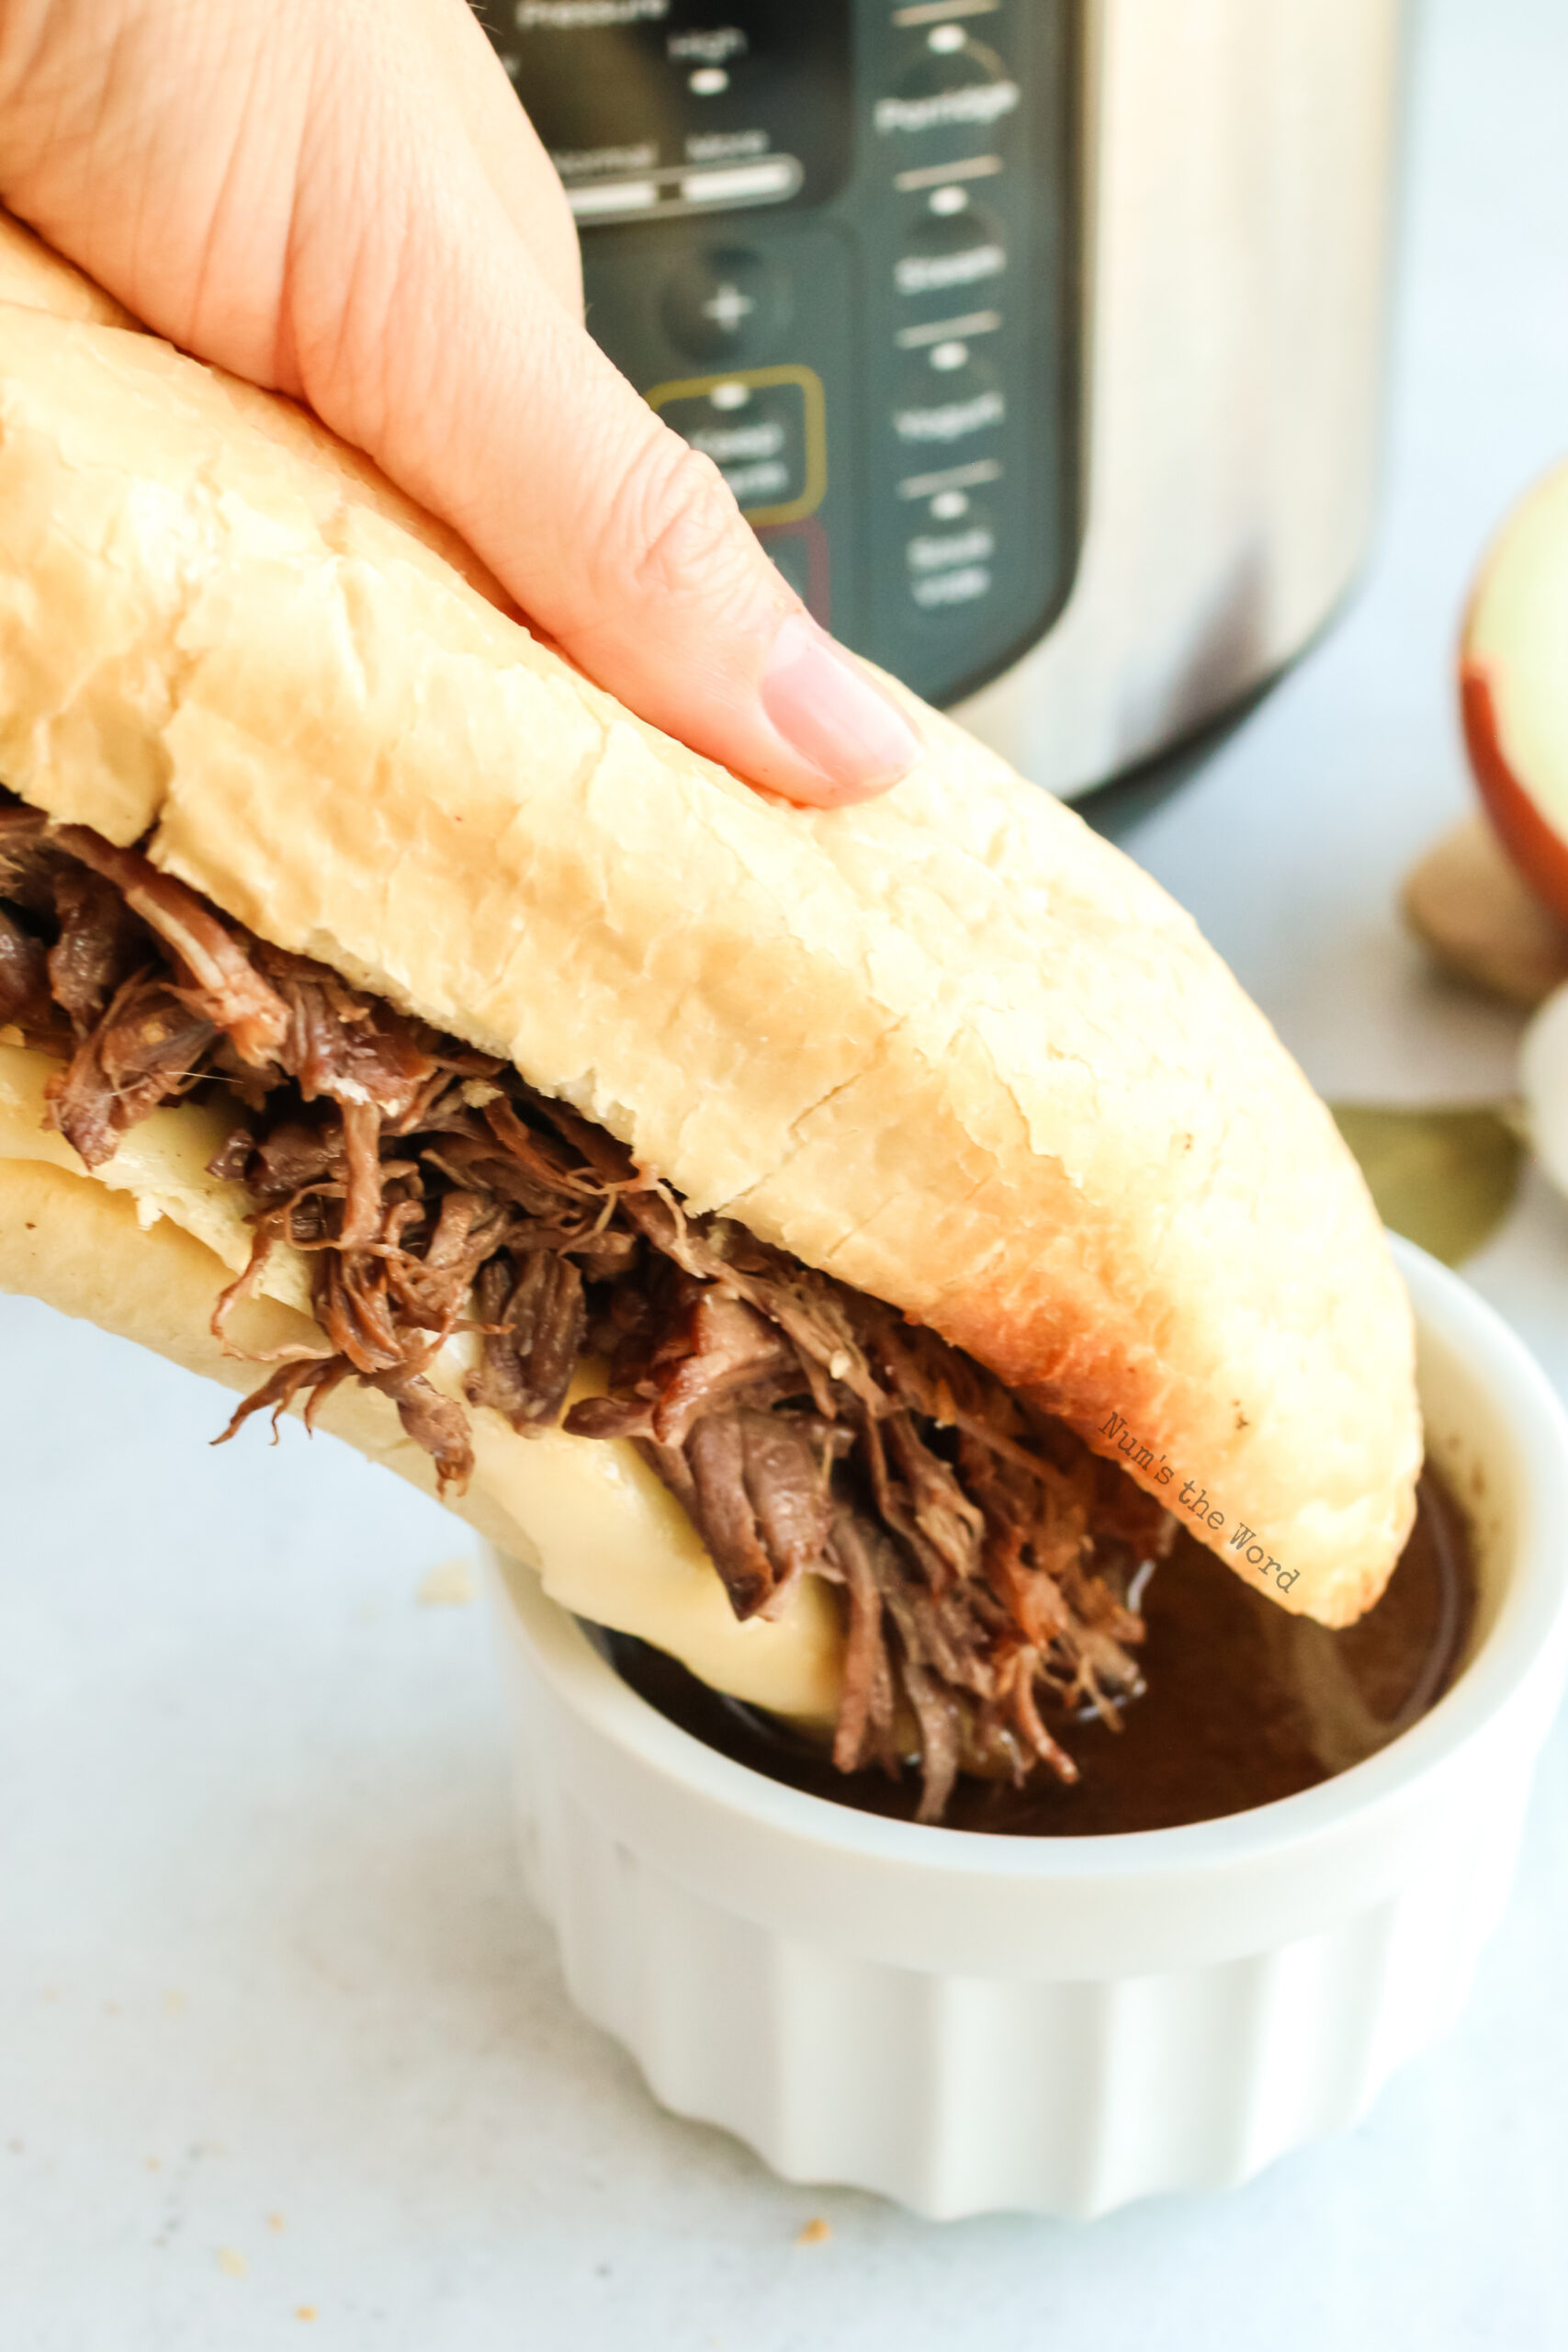 hand holding up a full sandwich about to be dipped into au jus